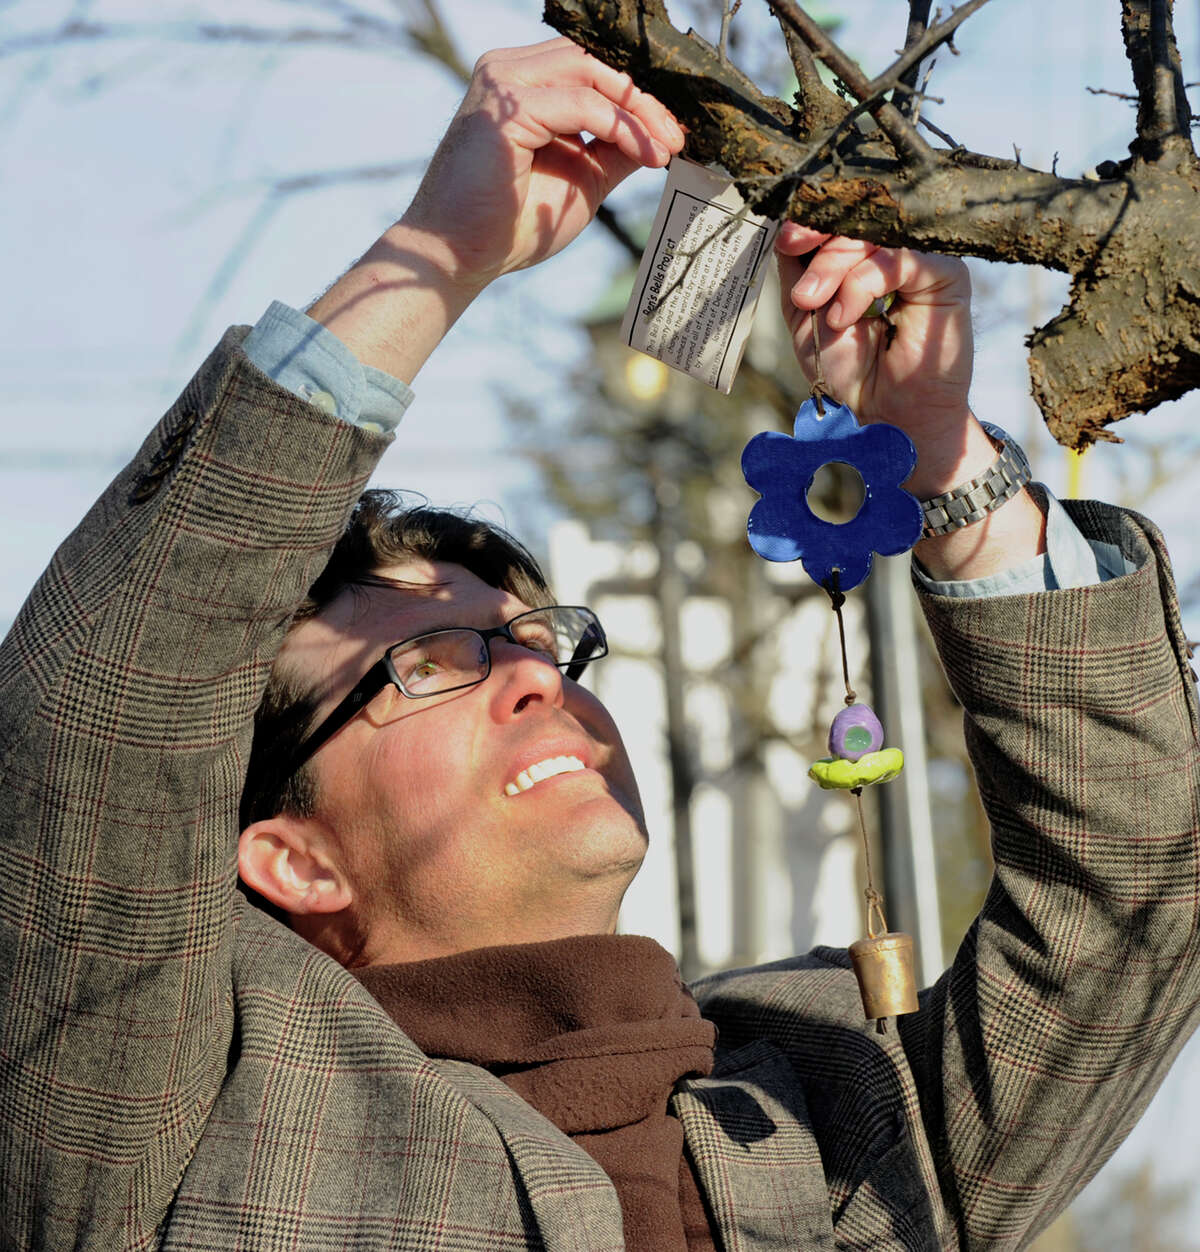 Jason Ott, is part of a group from Tucson, Arizona who, with the help of local volunteers, hung over 1000 ceramic bells around Newtown, in memory of the Sandy Hook victims, Tuesday, Jan. 8, 2012.